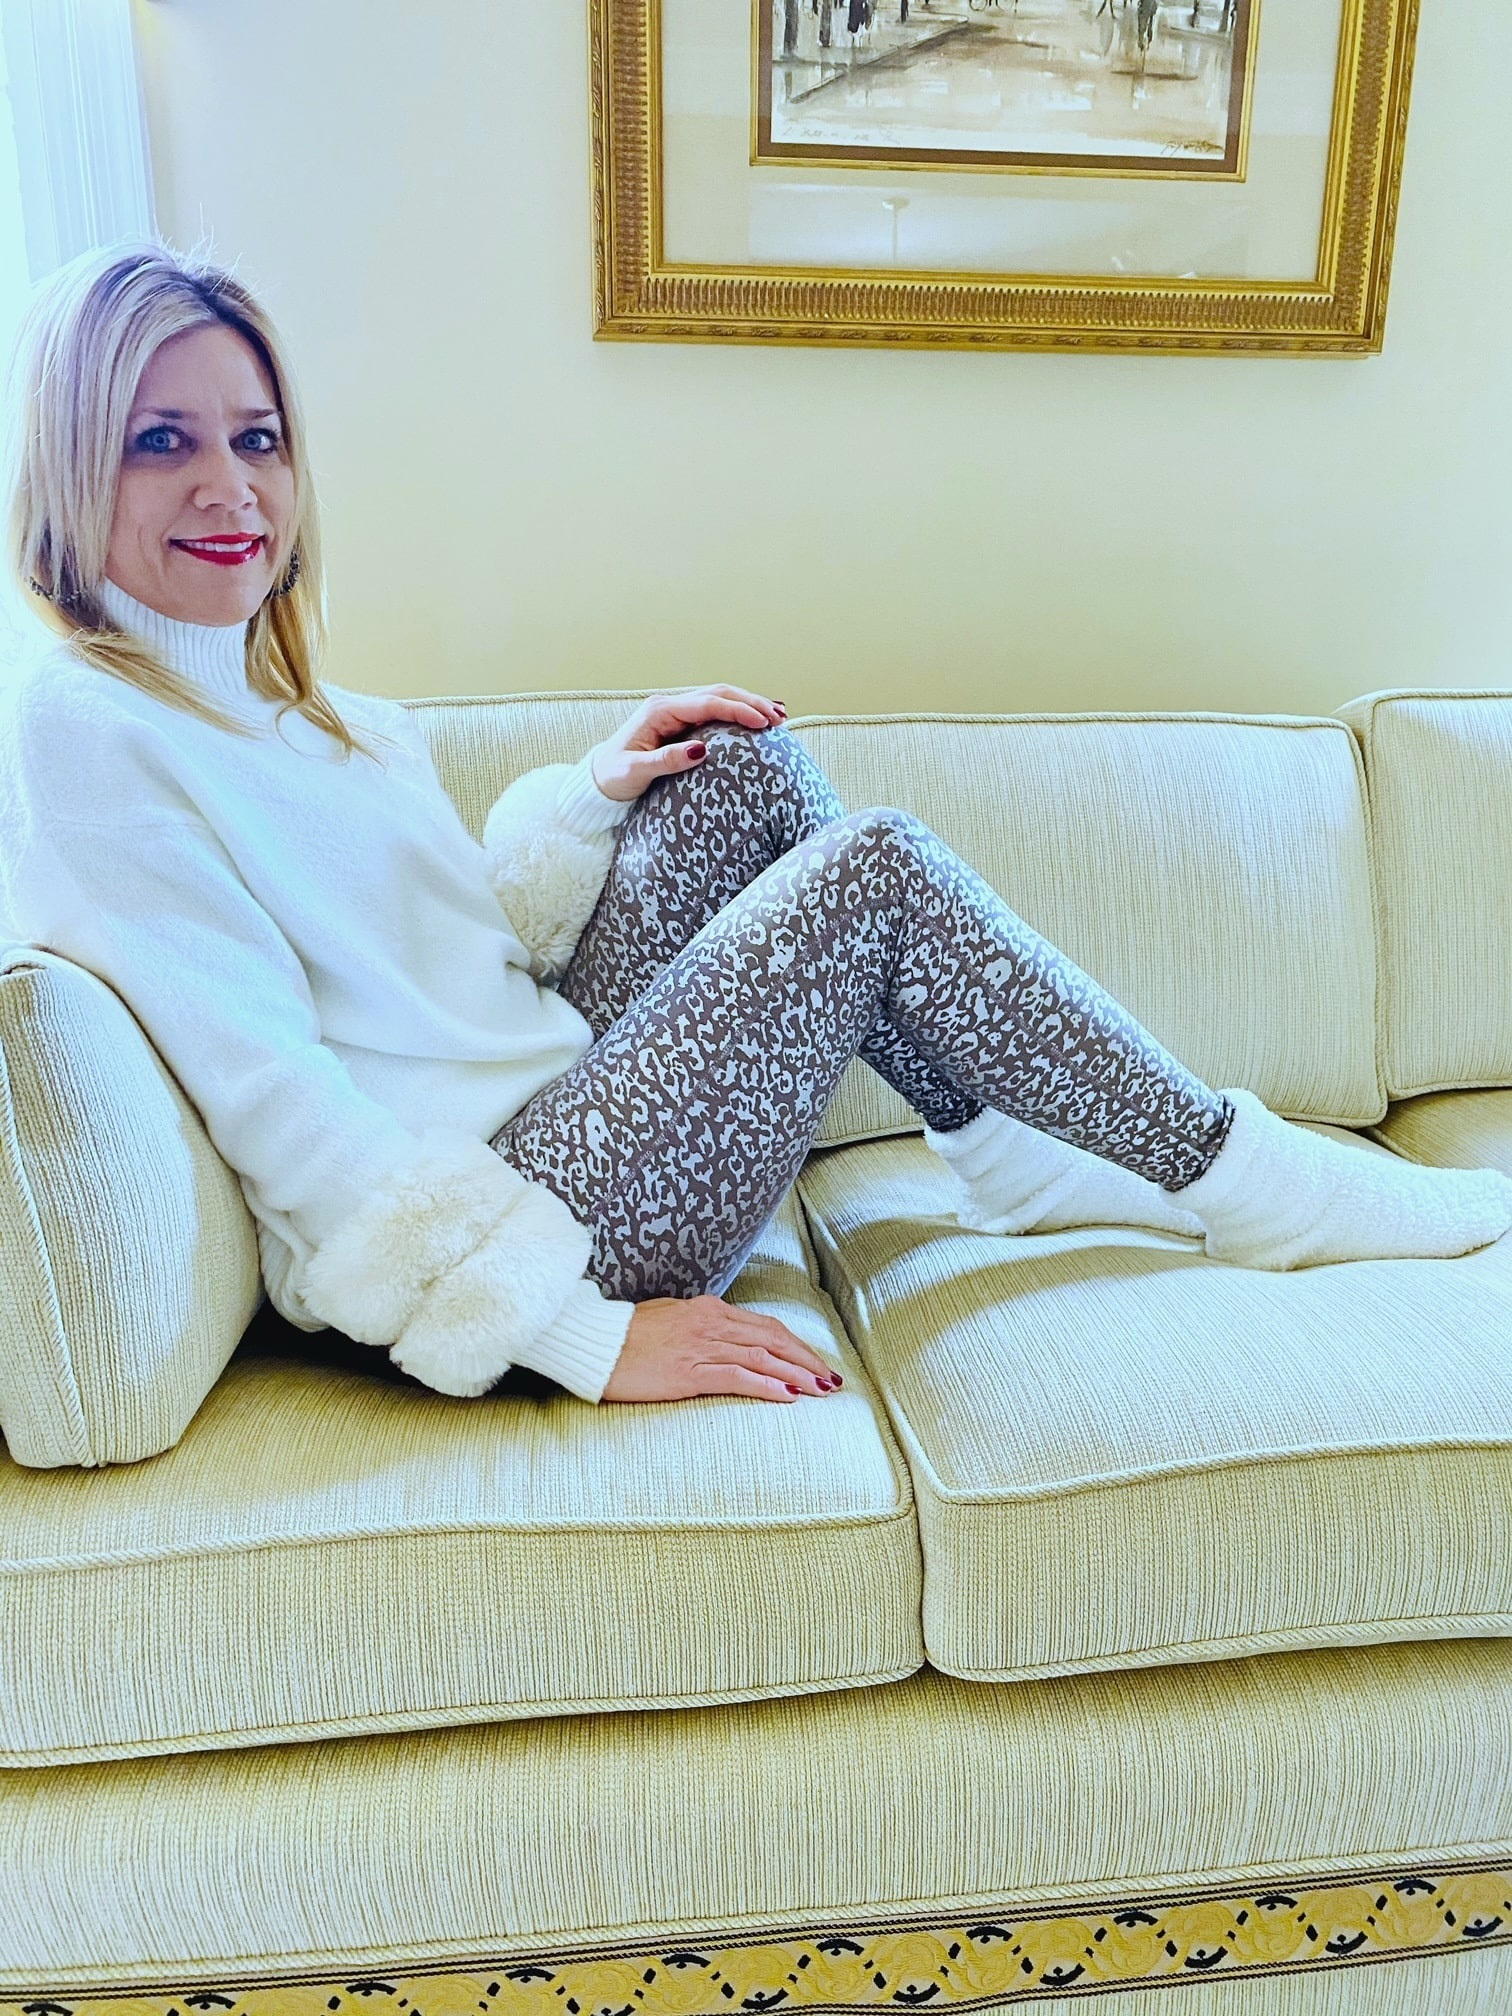 What's Your 2021 Style Resolution?, Revamp Your Loungewear